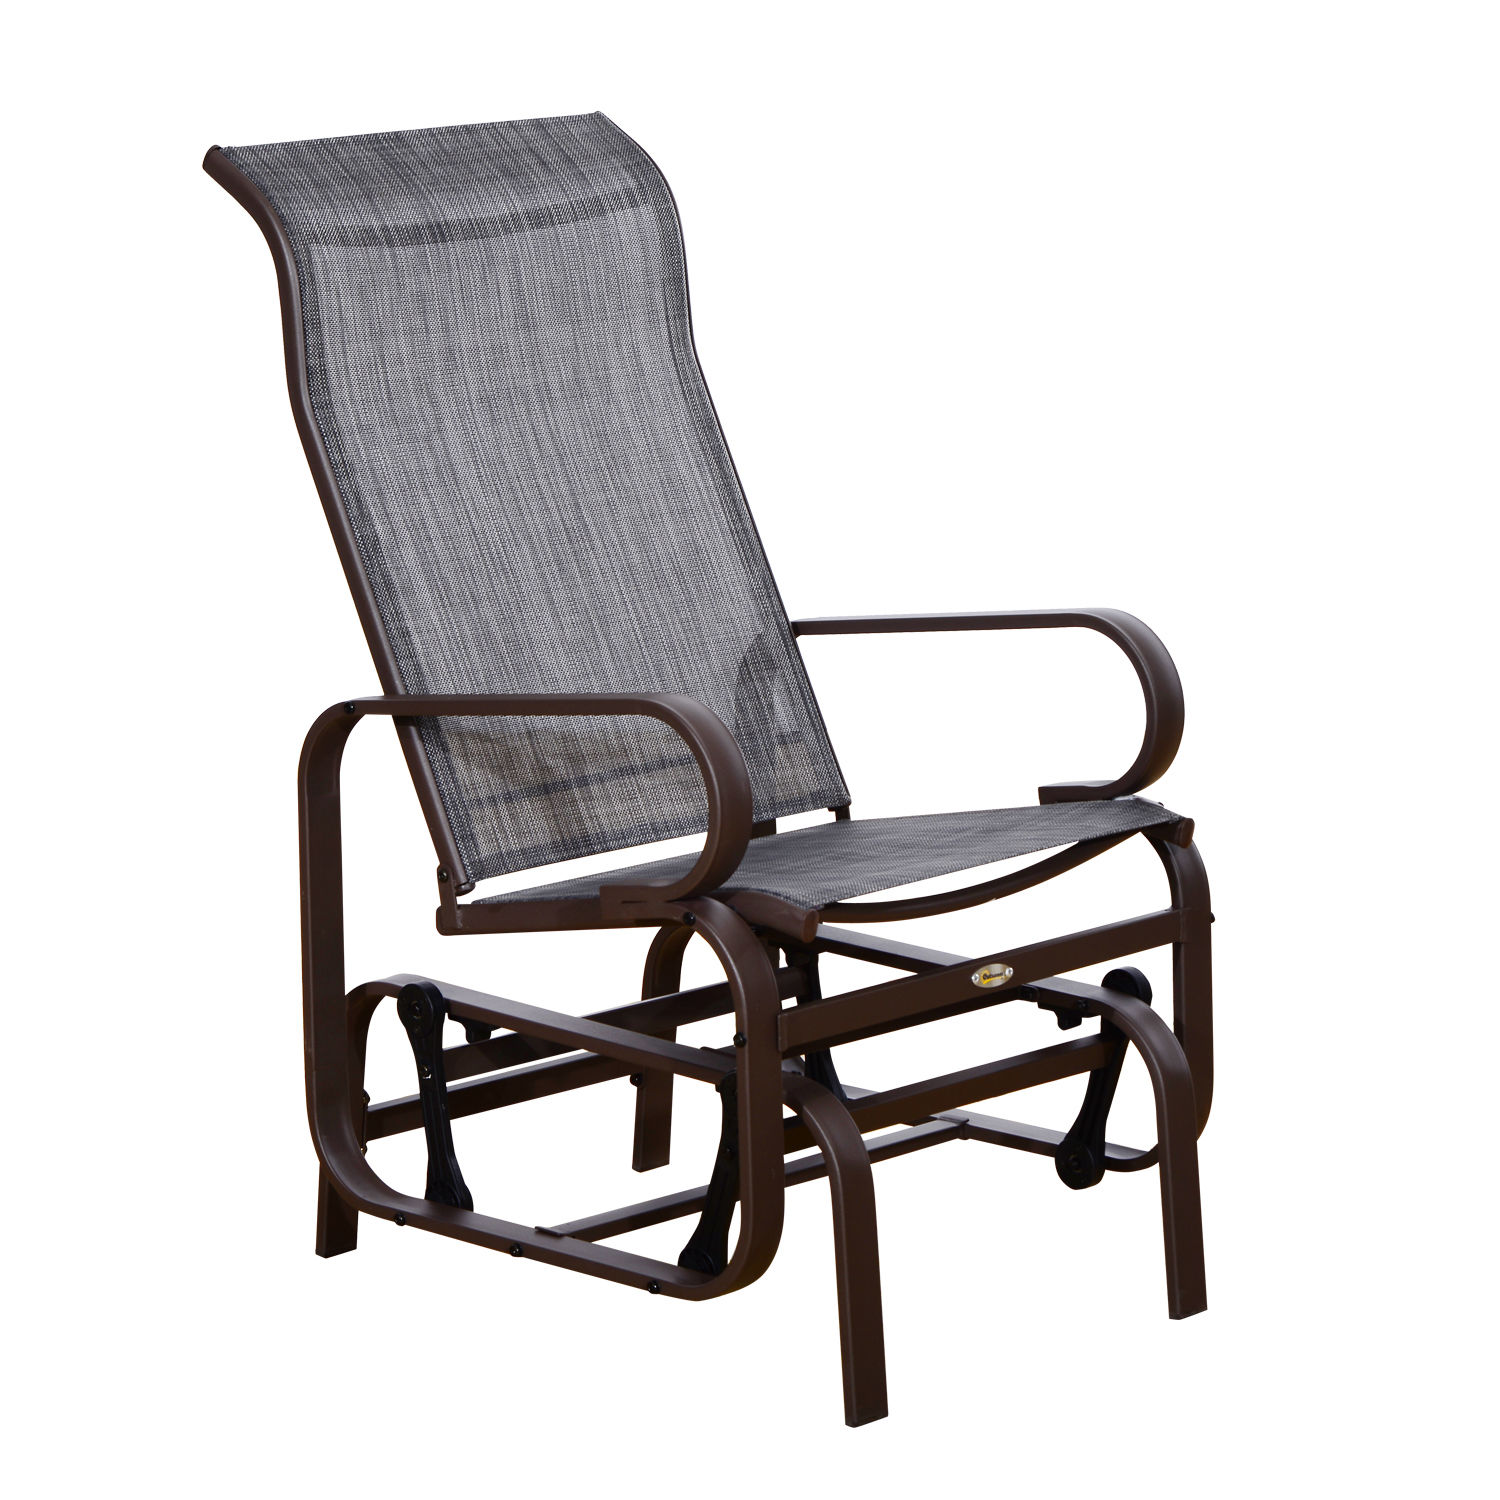 Aosom Outsunny Outdoor Fabric Gliding Chair - Brown